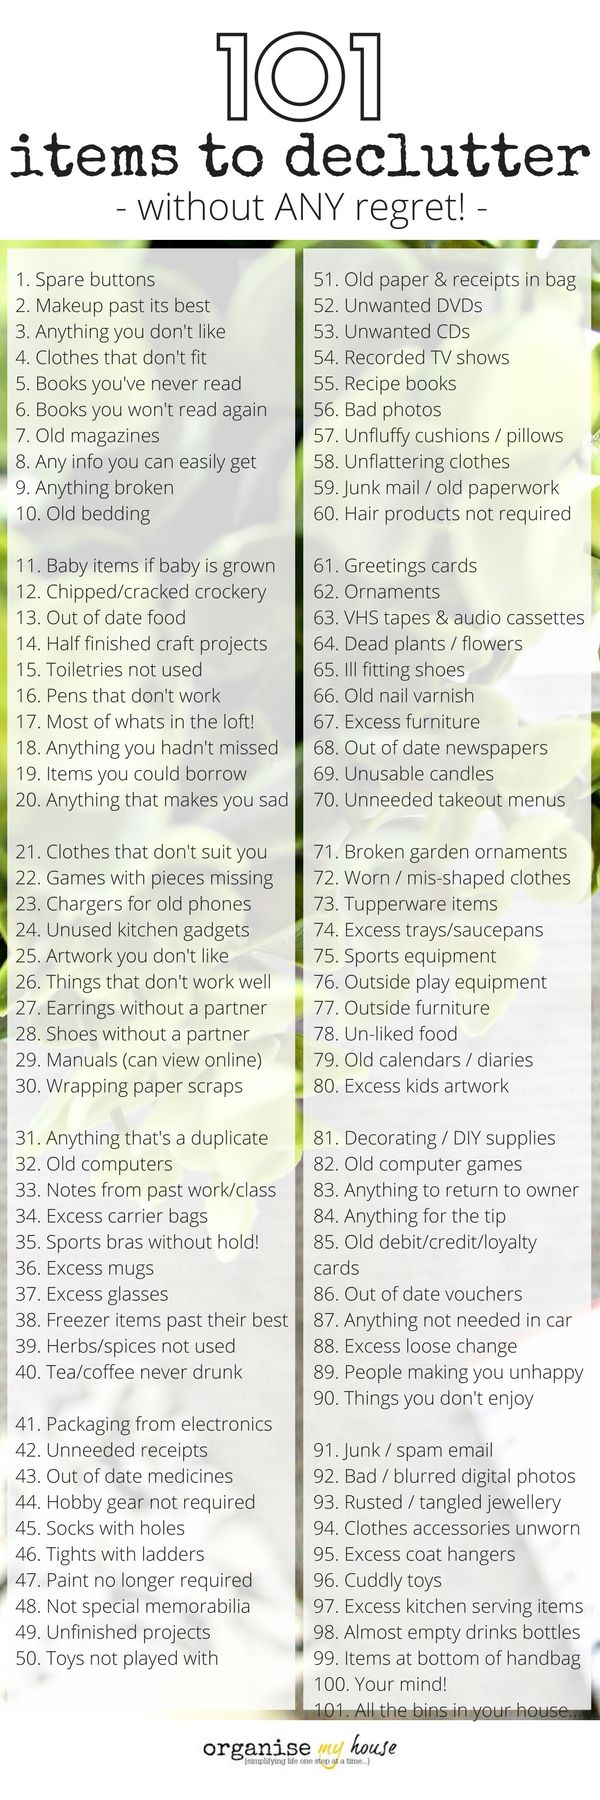 List of 101 items to declutter from your home. Clutter items that you can get rid of right now to make more room for what matters. Decluttering list.